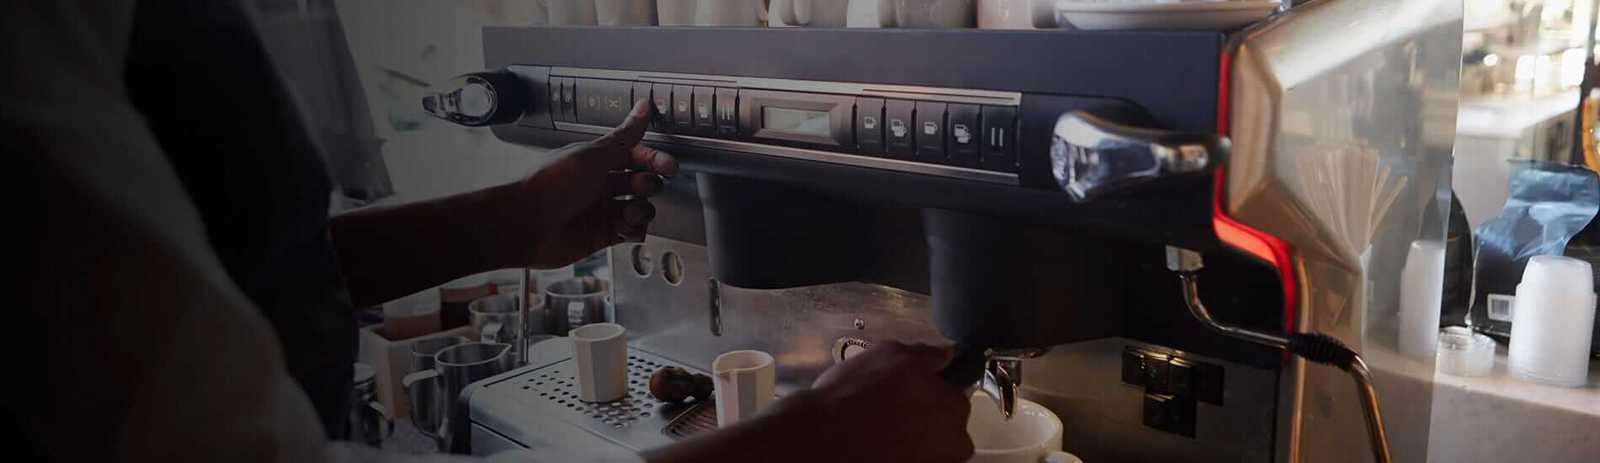 rent commercial coffee machine